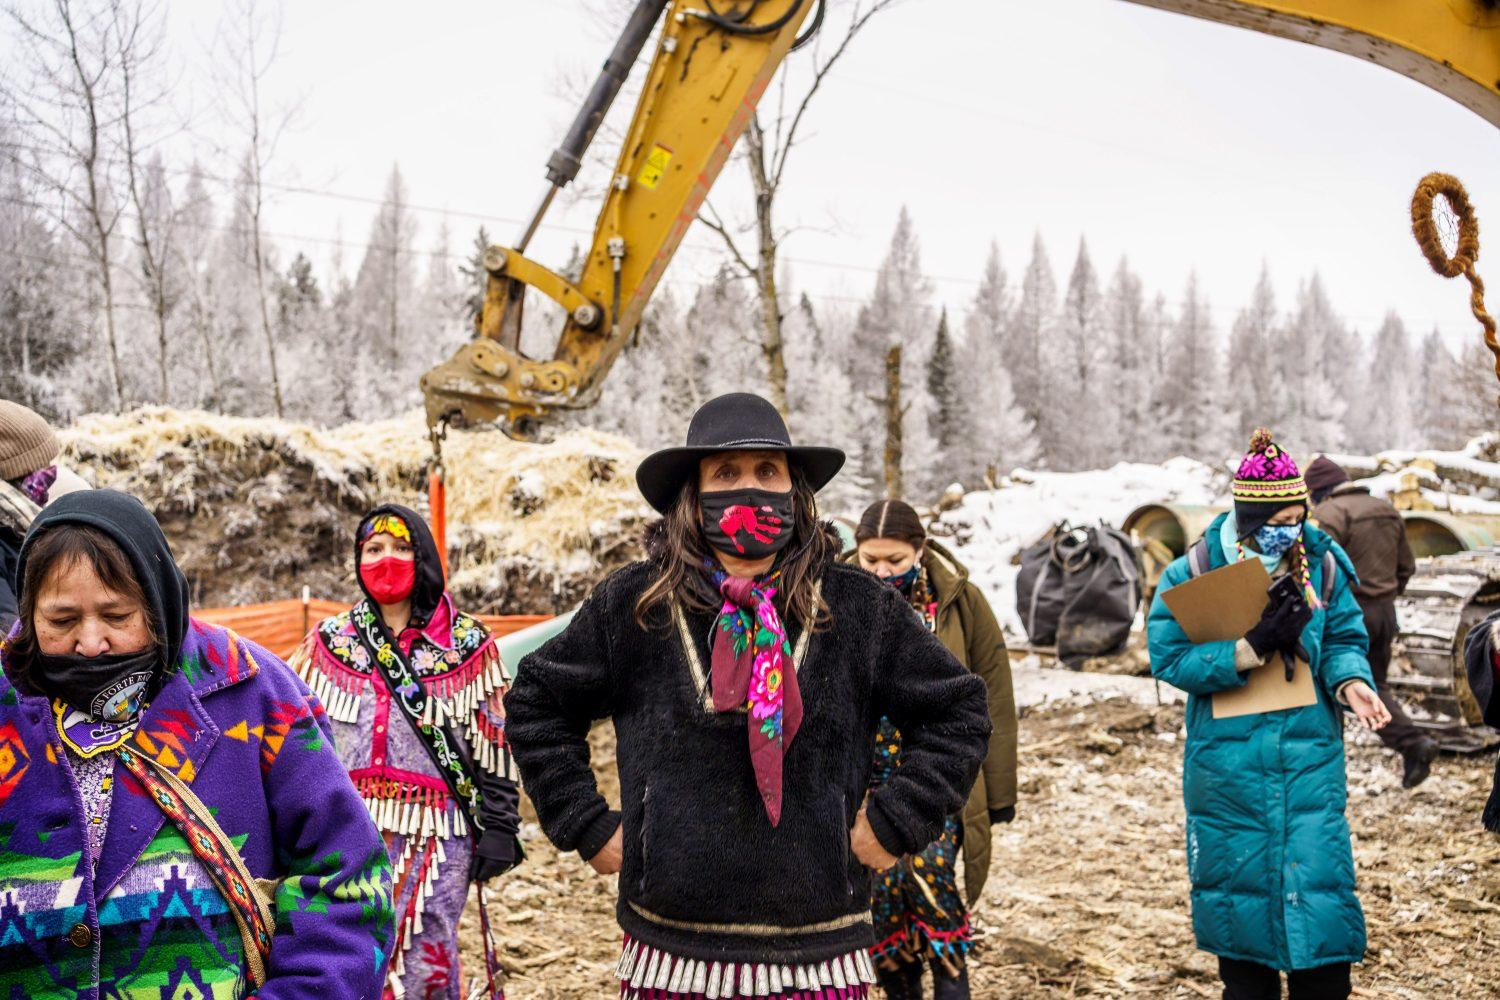 Winona LaDuke, center, and water protectors stand in front of the Line 3 construction site in January.